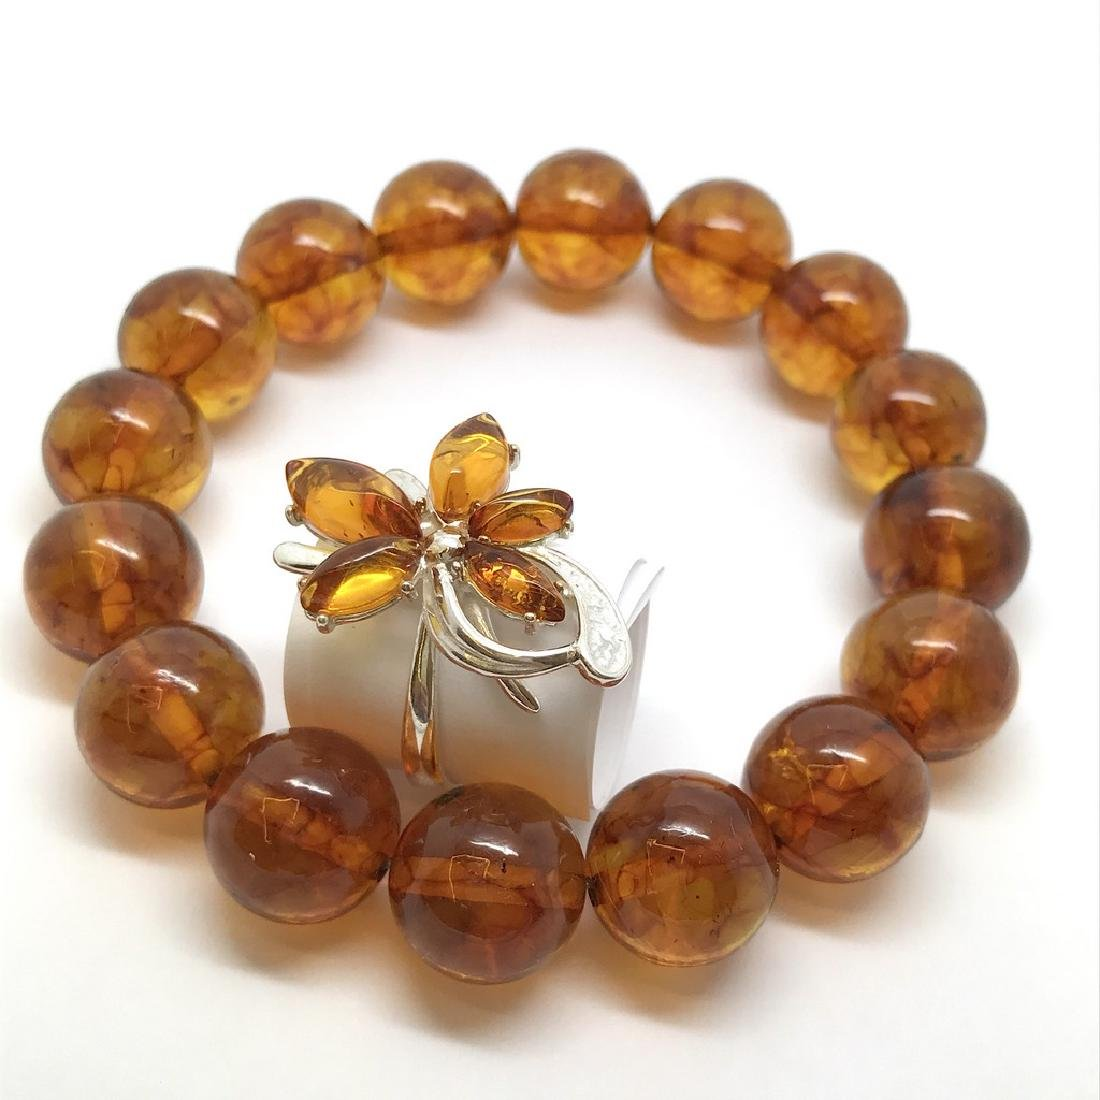 Bracelet & ring with Baltic amber Silver 925 - 3